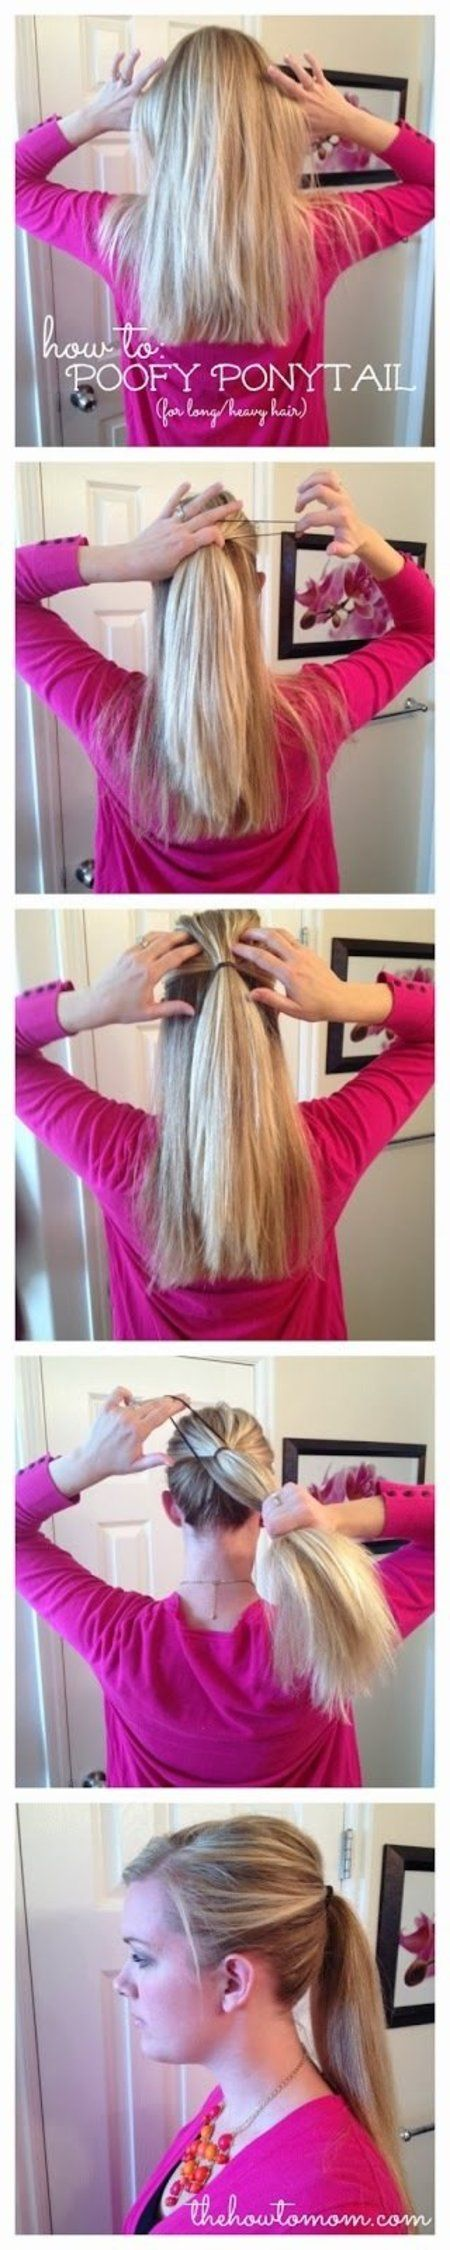 U could do dis and not poof it, and it makes ur ponytail stay without falling (those with long thick hair like me know what im talking about) and makes your hair look, fuller! A must for a active job